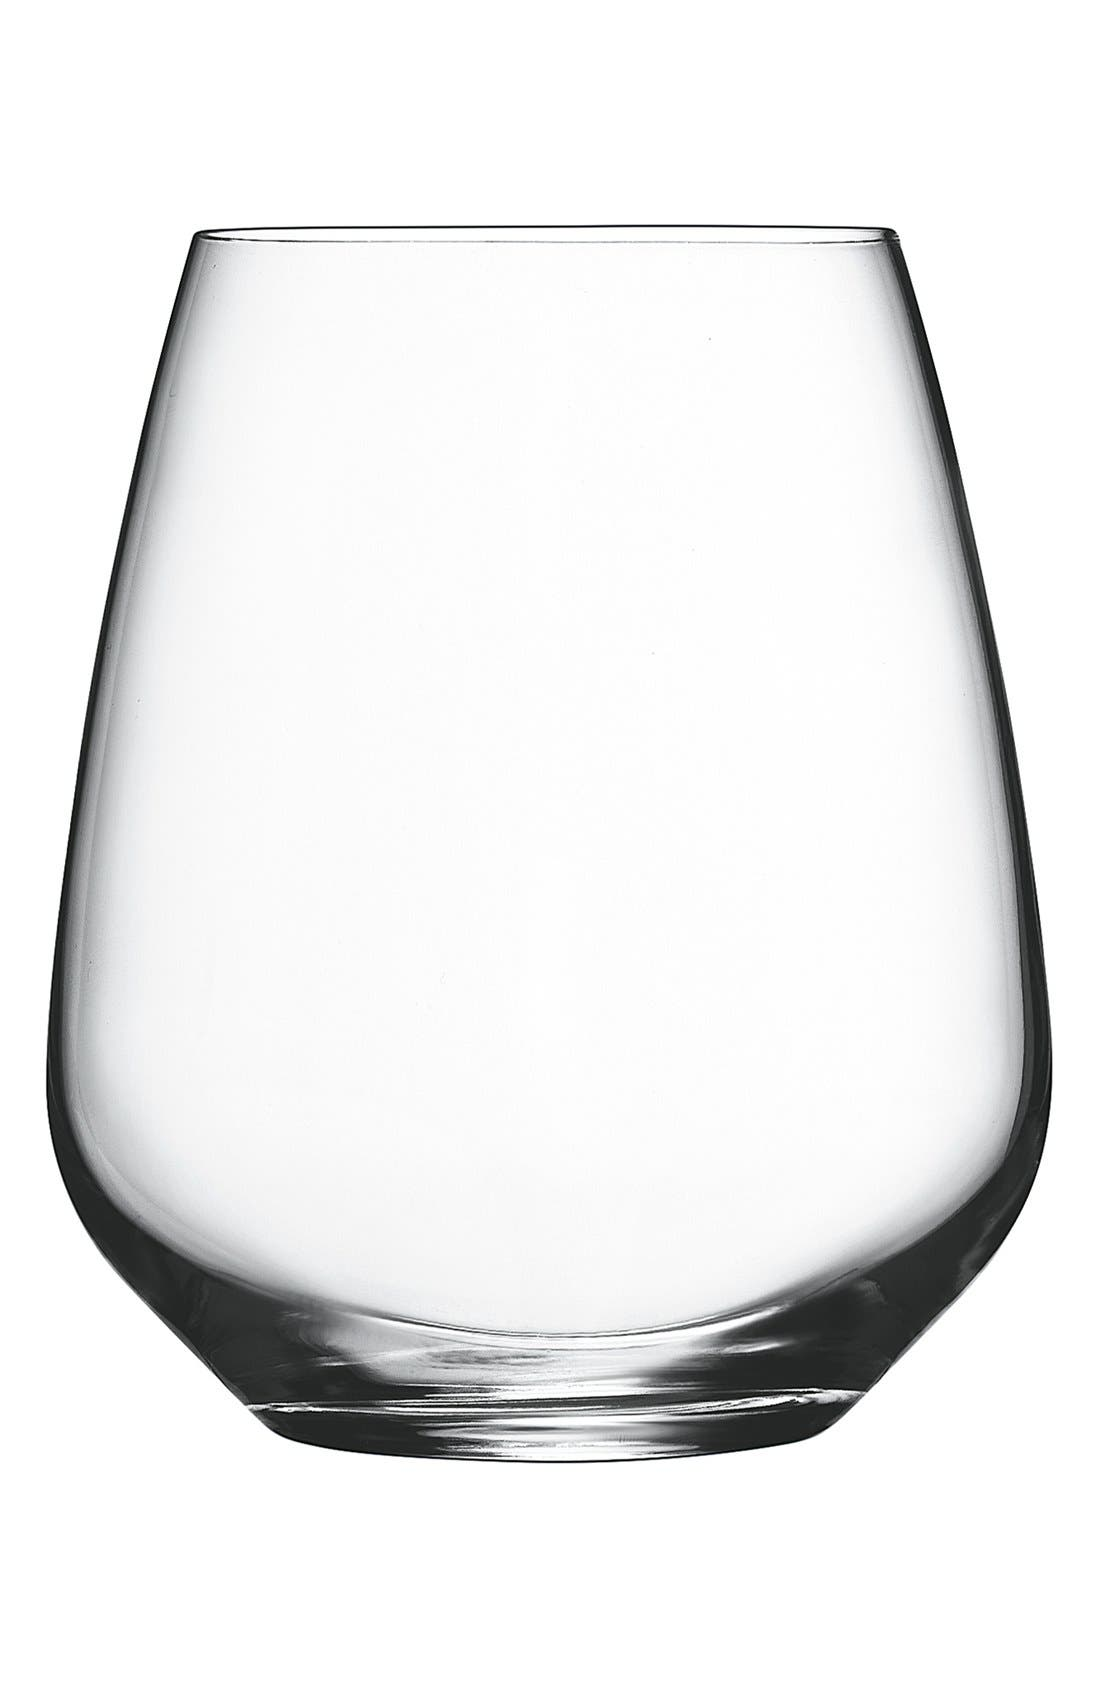 'Crescendo' Stemless Wine Glasses,                         Main,                         color, CLEAR